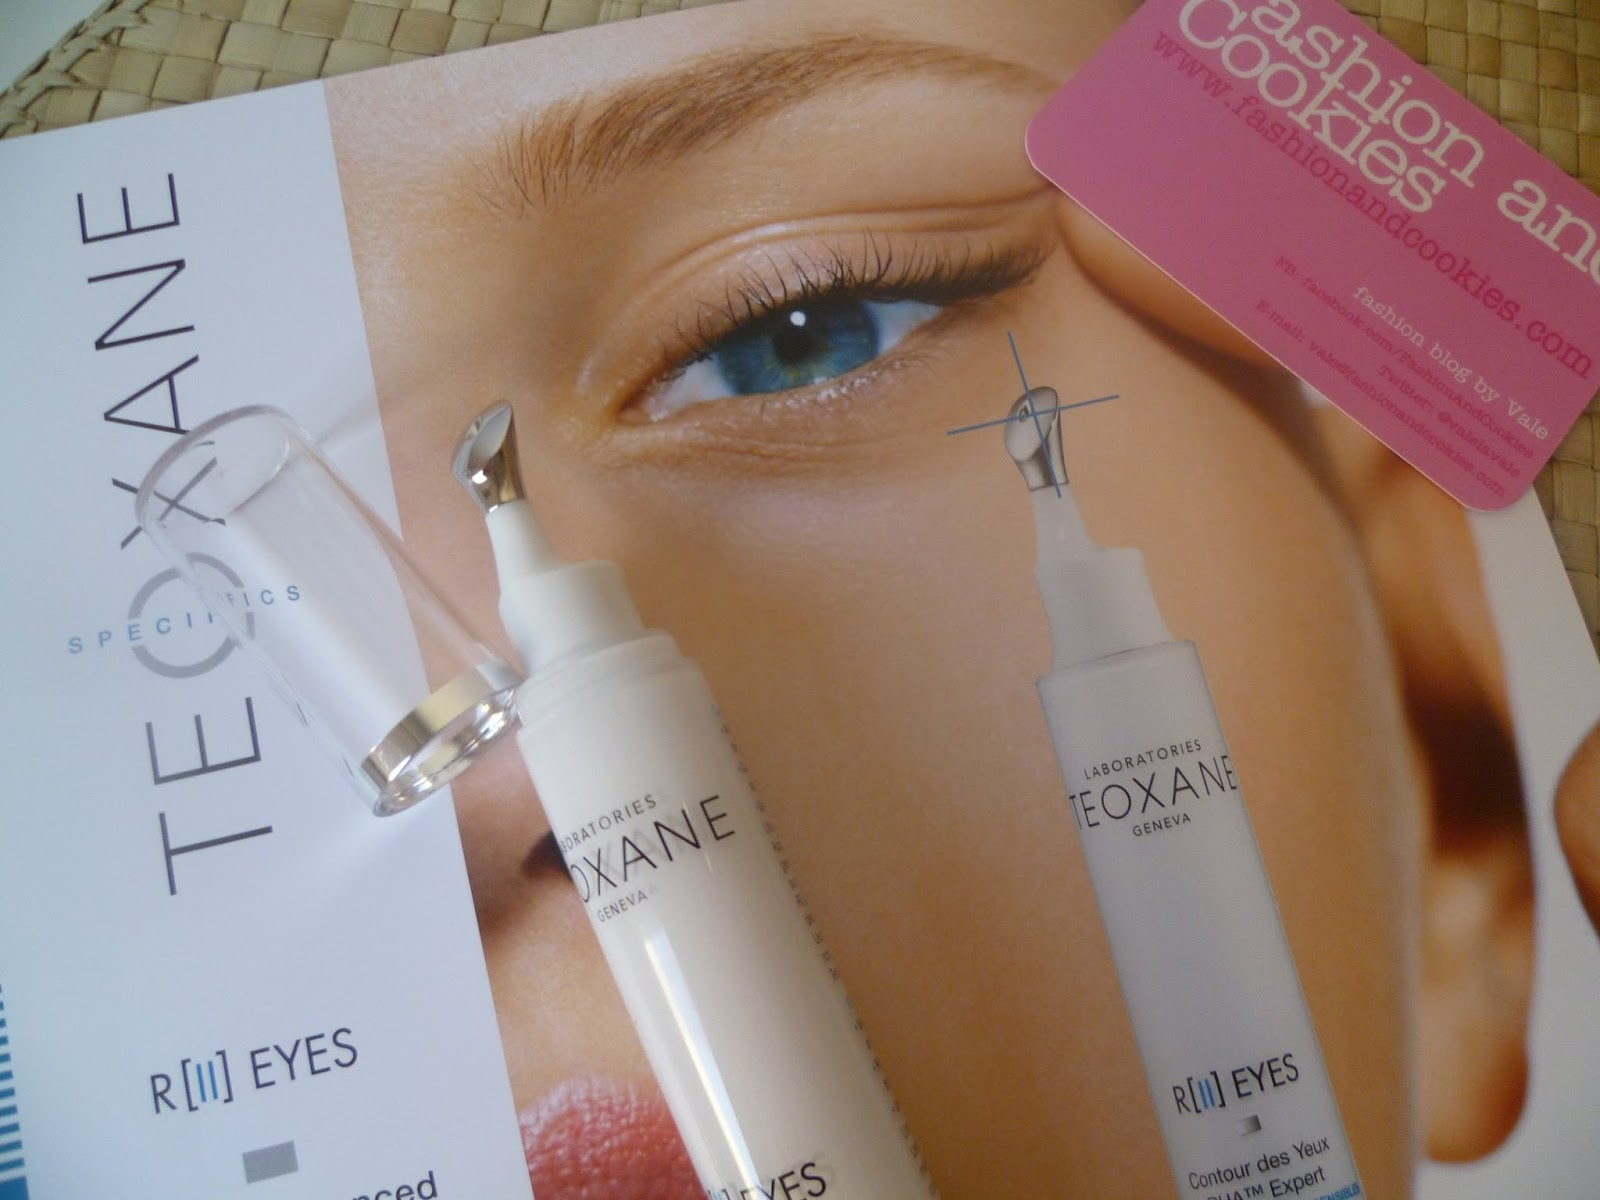 Teoxane Advanced Eye Contour review on Fashion and Cookies fashion and beauty blog